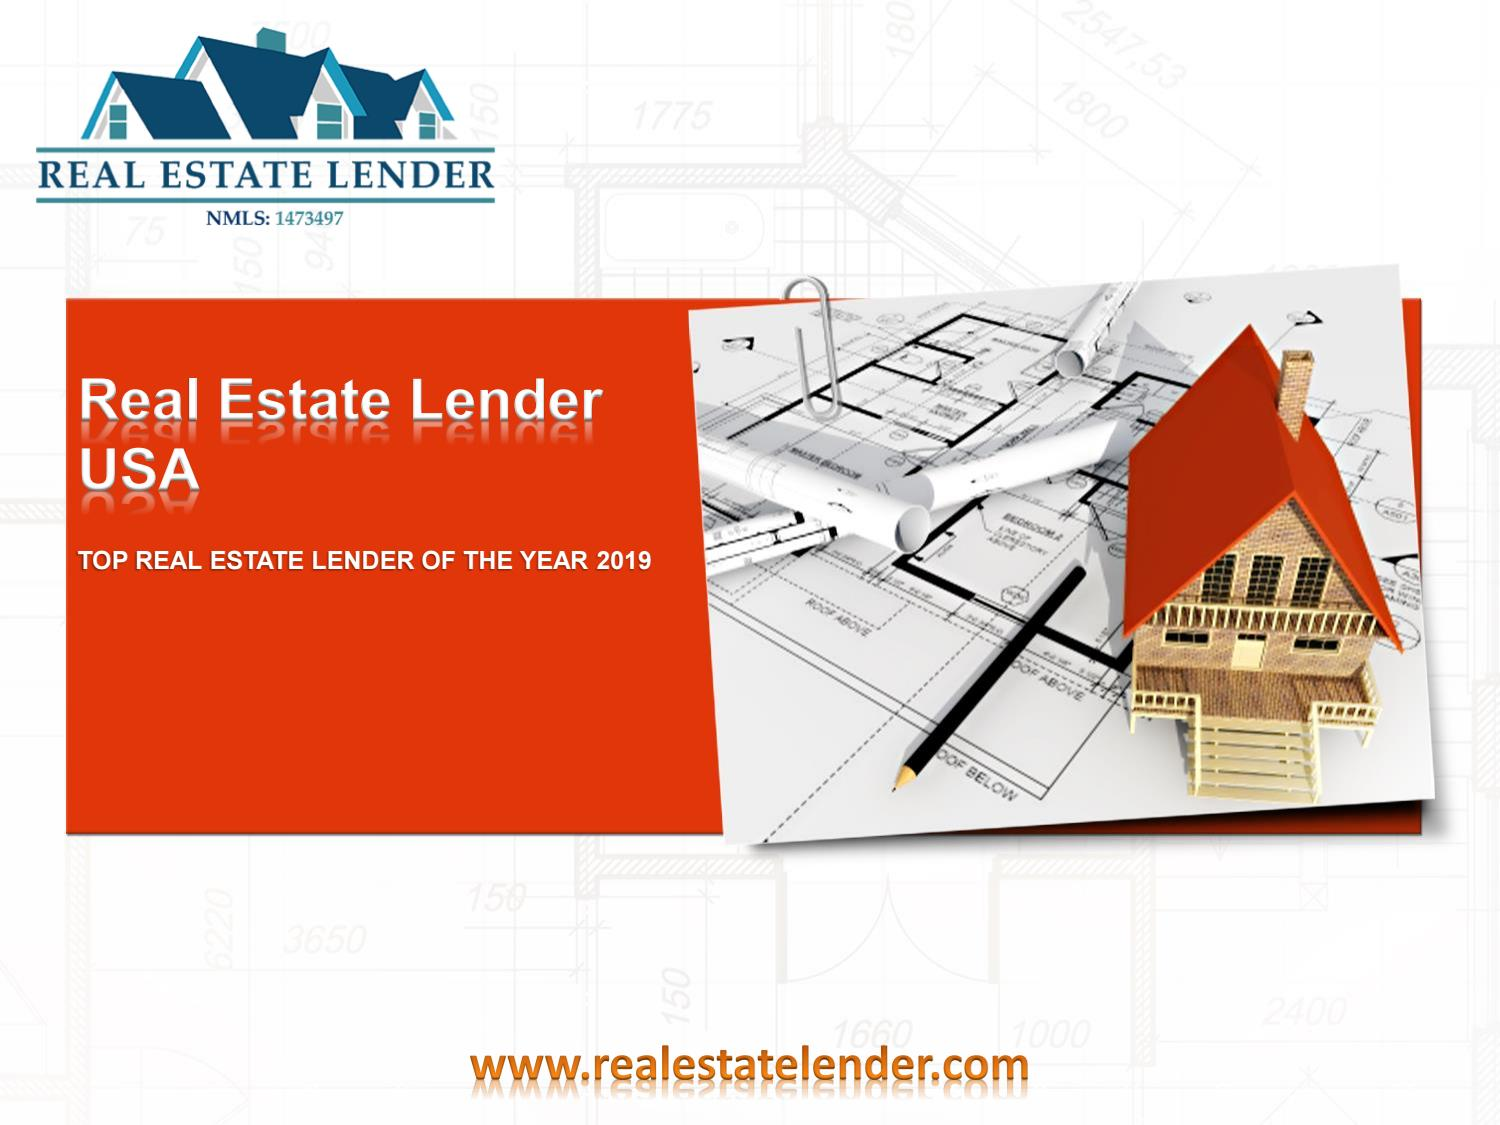 New Construction and Fix & Flip Loans at Real Estate Lender USA